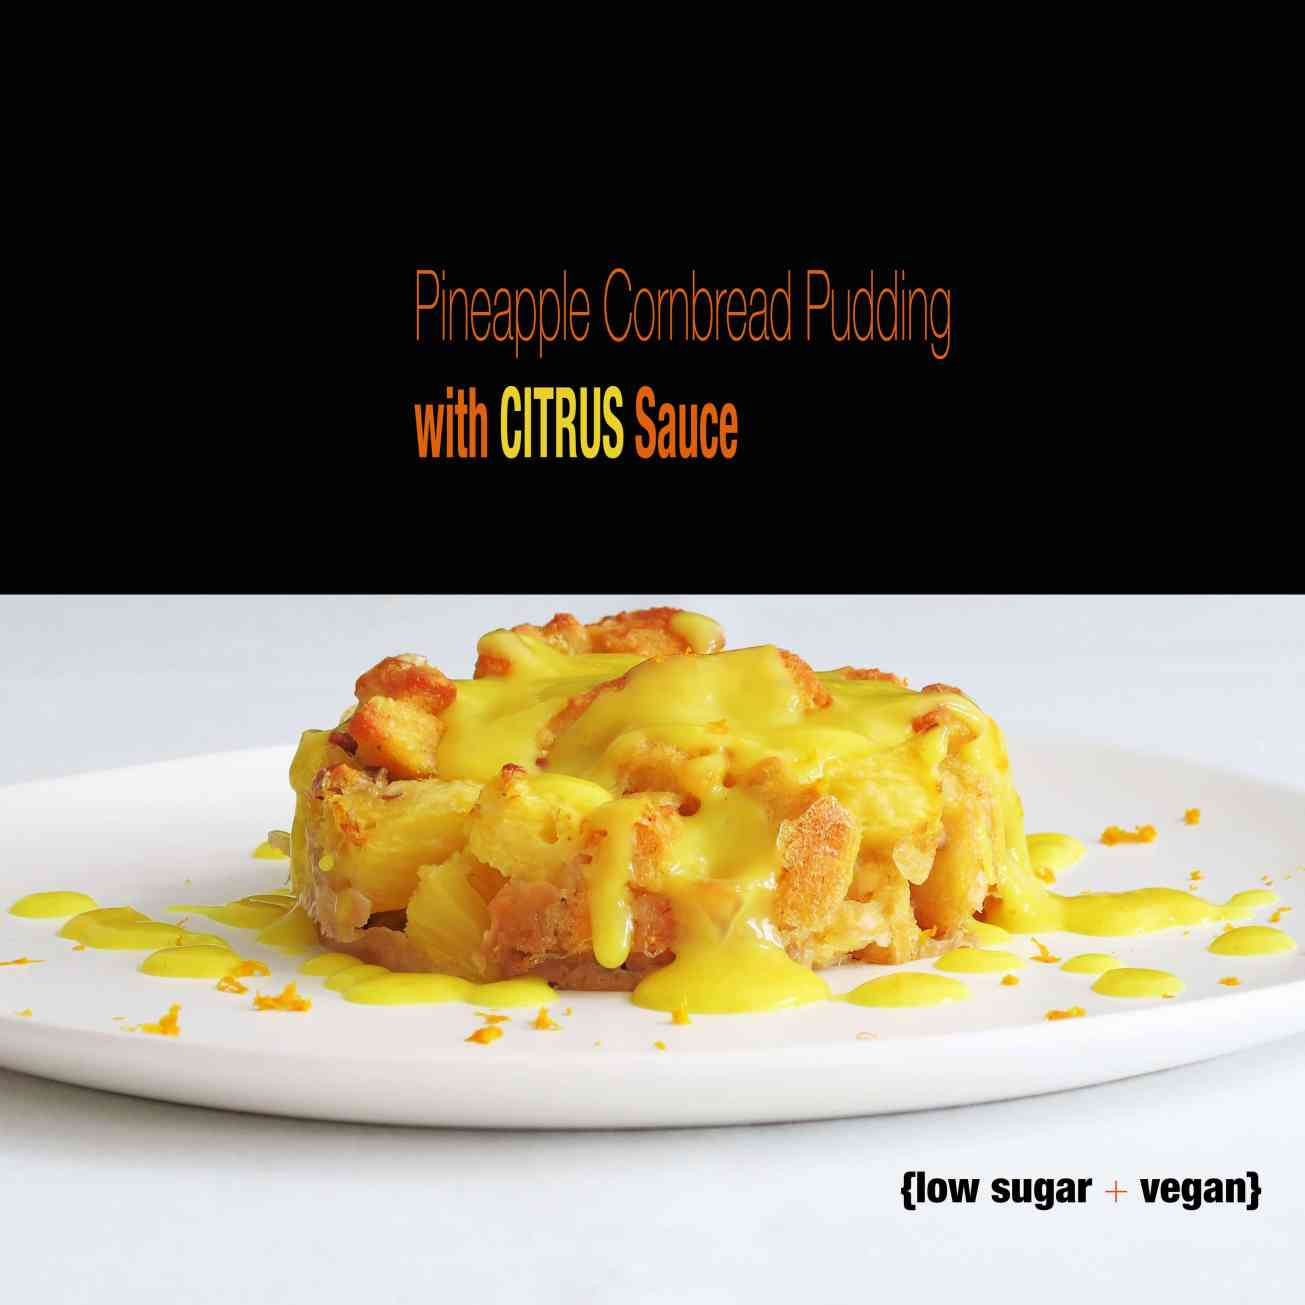 pineapple_cornbread_pudding_side2black_1148